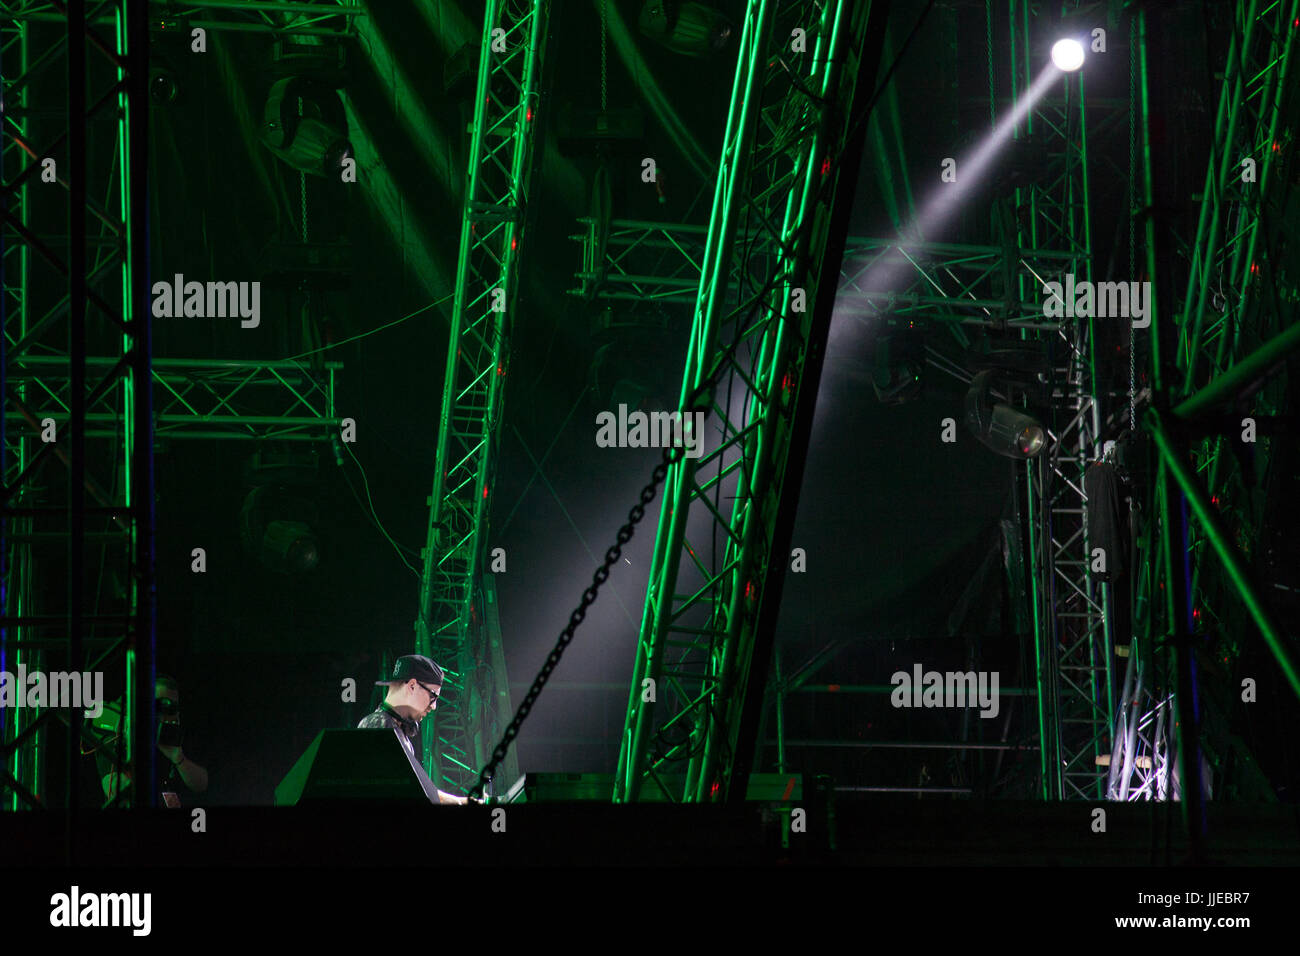 NOVI SAD, SERBIA - JULY 7, 2017: DJ Robin Schulz performing on stage during the 2017 edition of Exit Festival  Picture - Stock Image